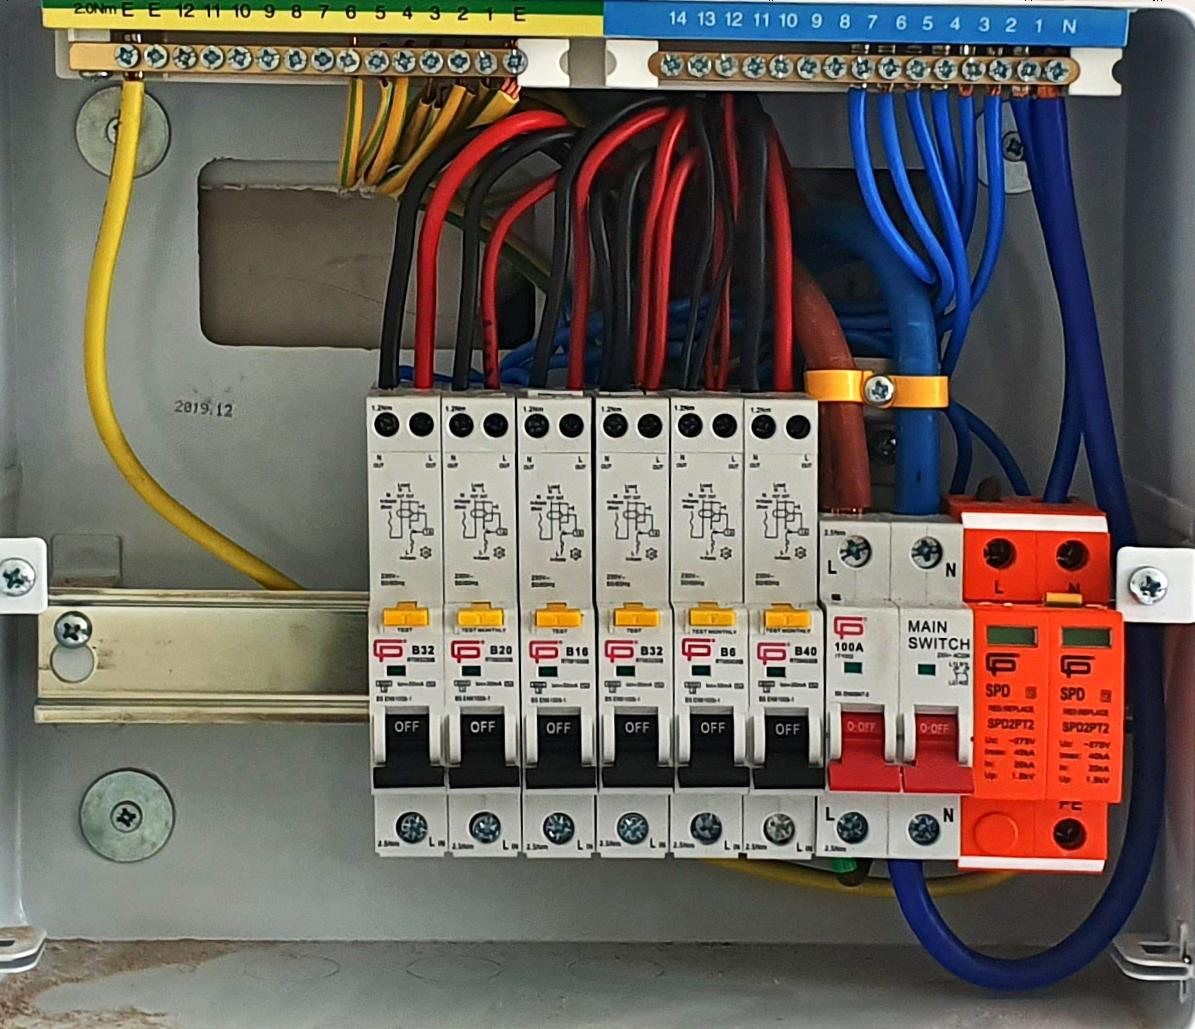 Fuse box upgrade in Sleaford